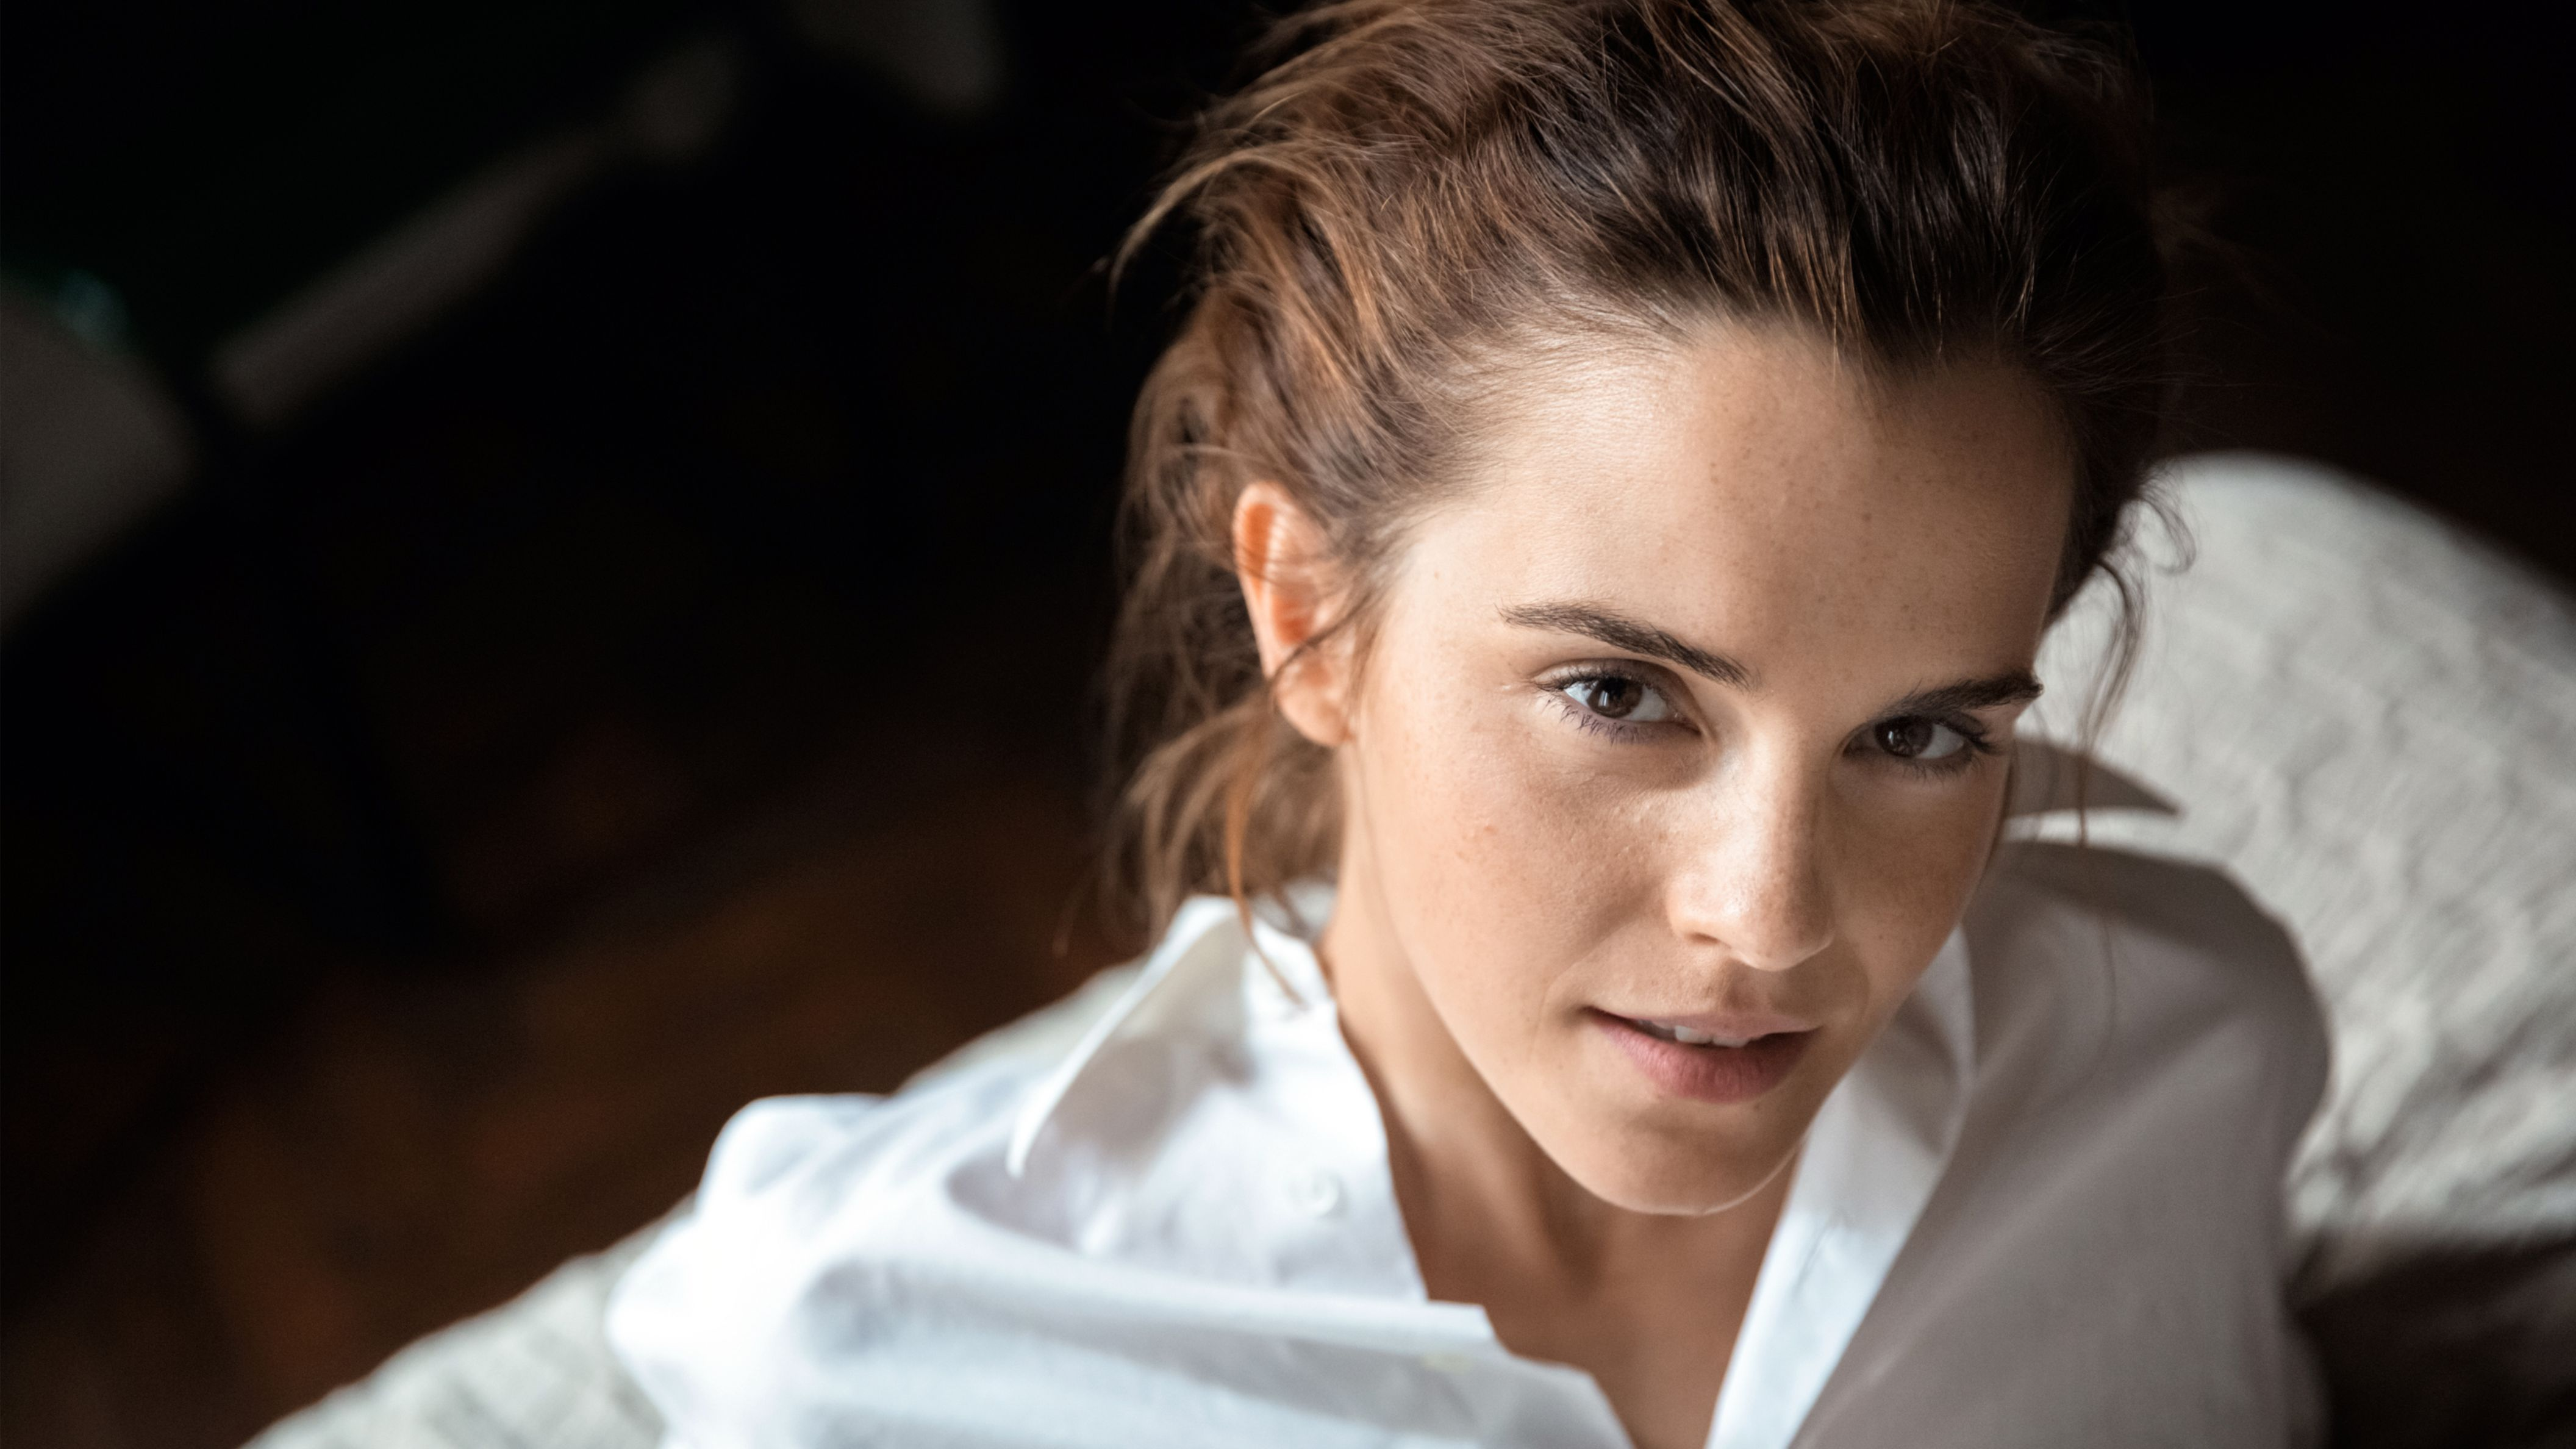 Download free HD Emma Watson 314 HD Wallpaper, image